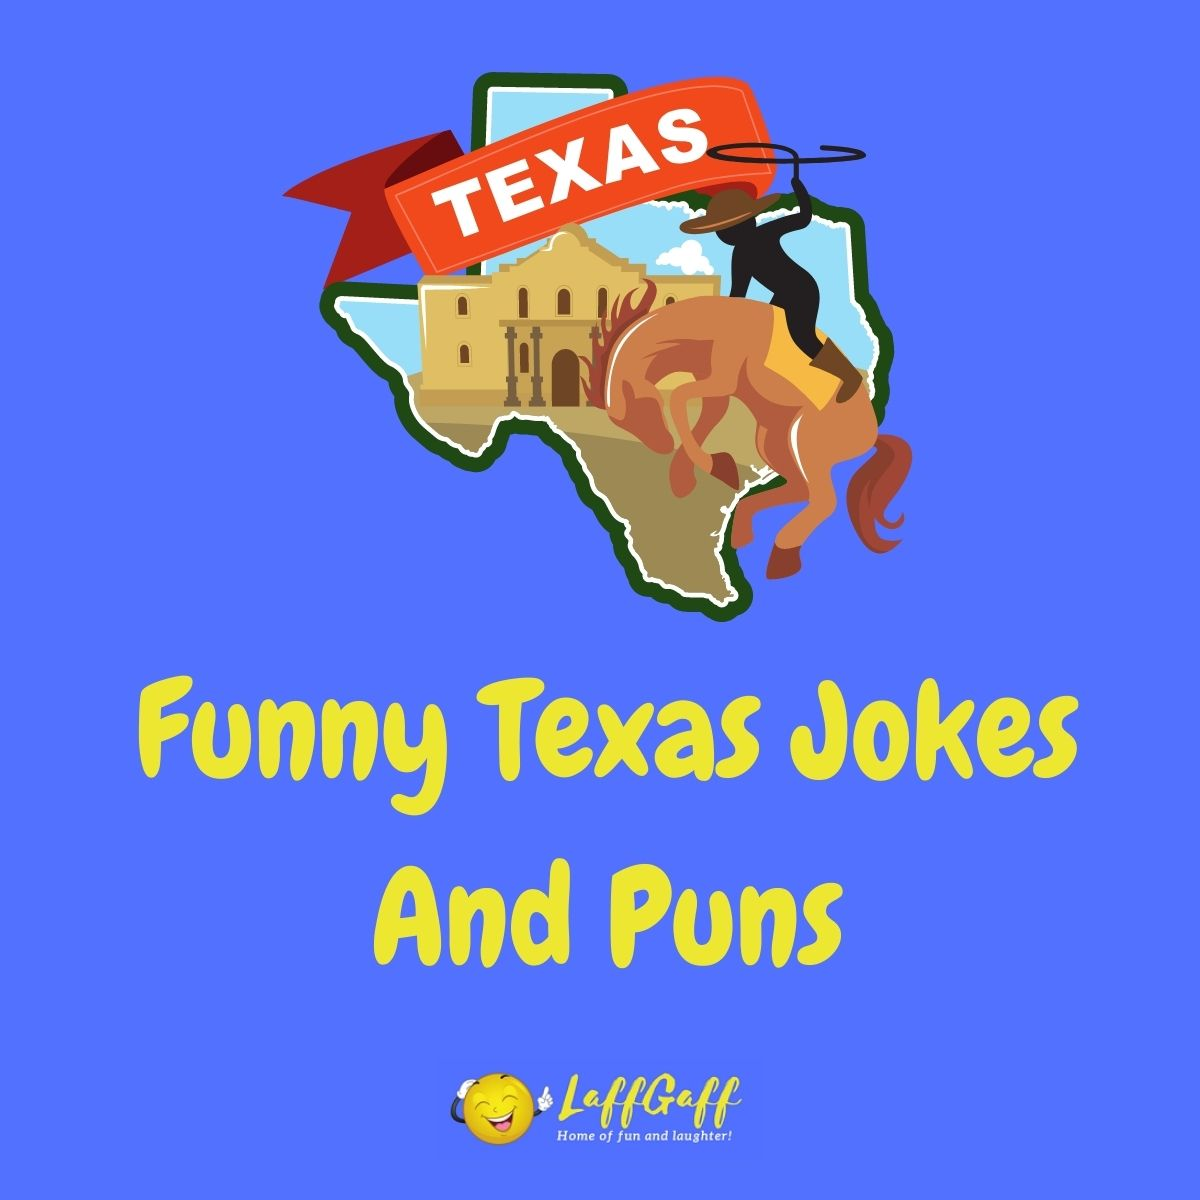 Featured image for a page of funny Texas jokes and puns.